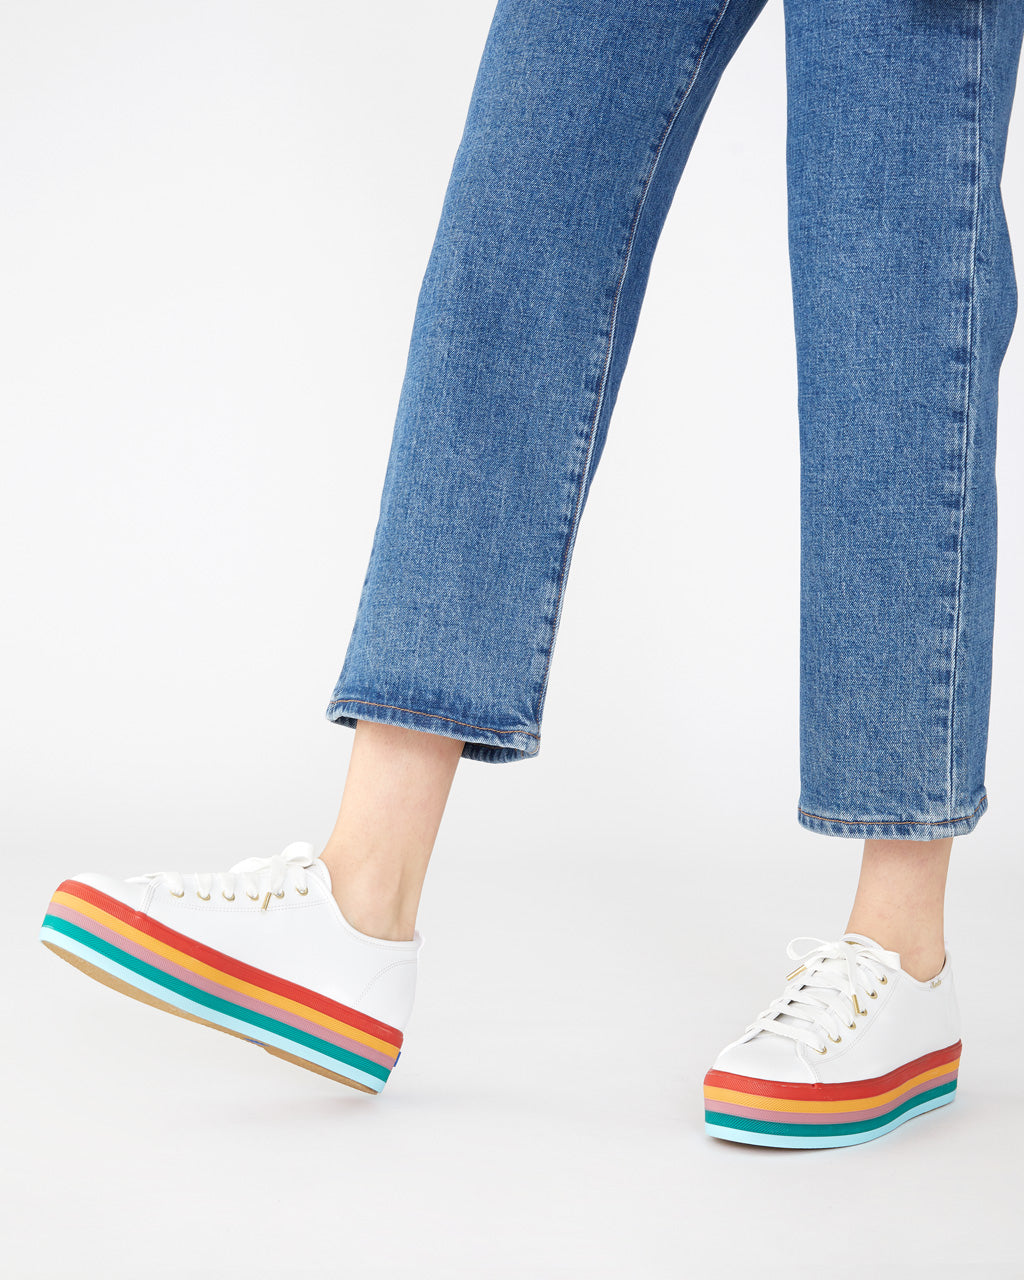 Triple Up Rainbow by Keds - Shoes - ban.do